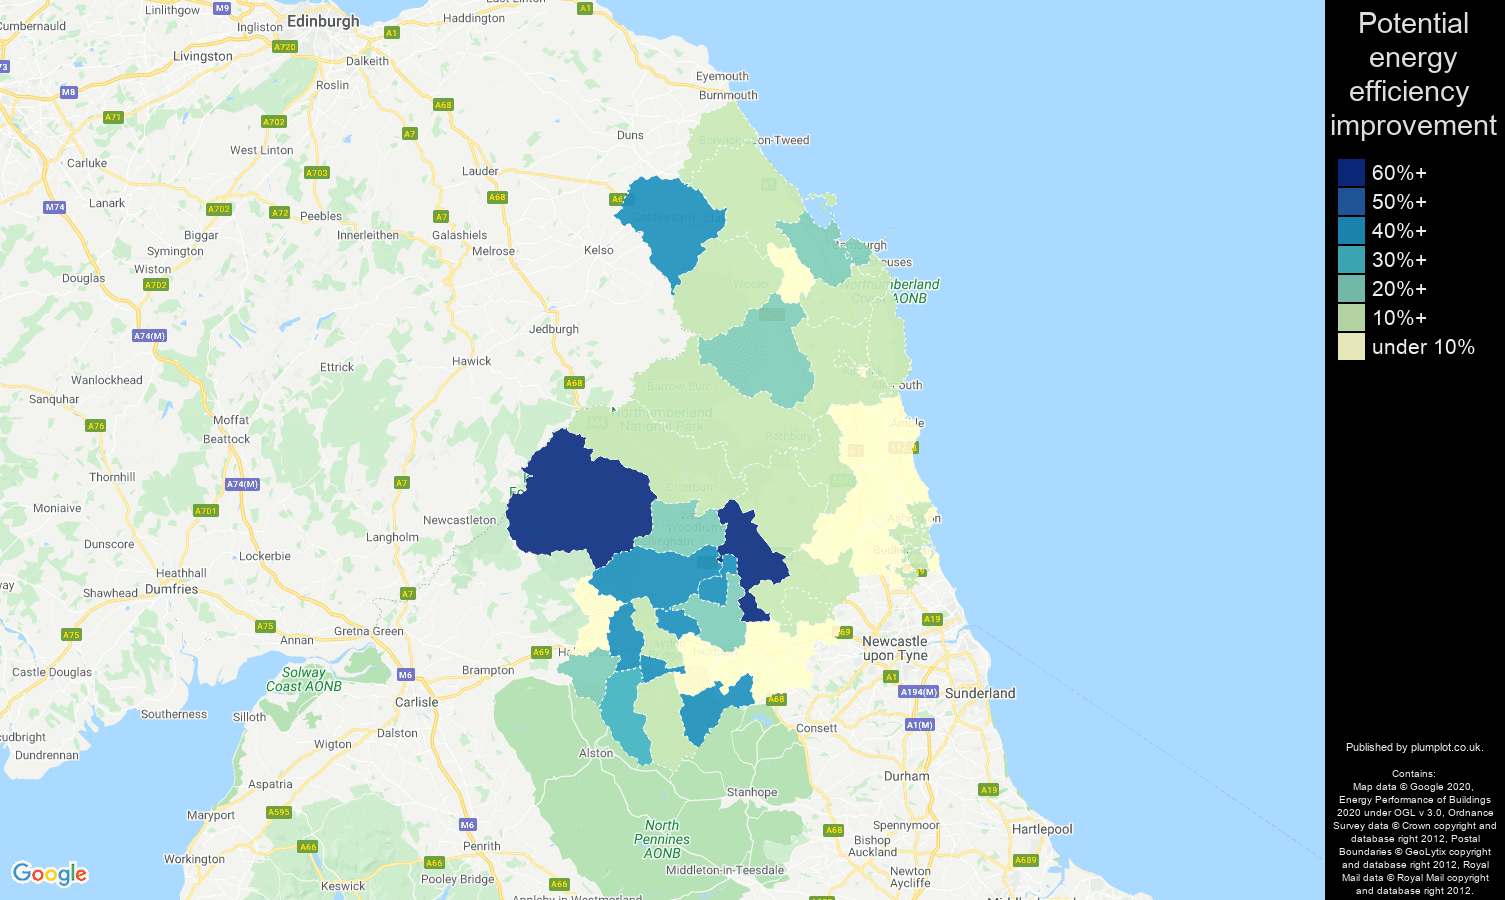 Northumberland map of potential energy efficiency improvement of flats